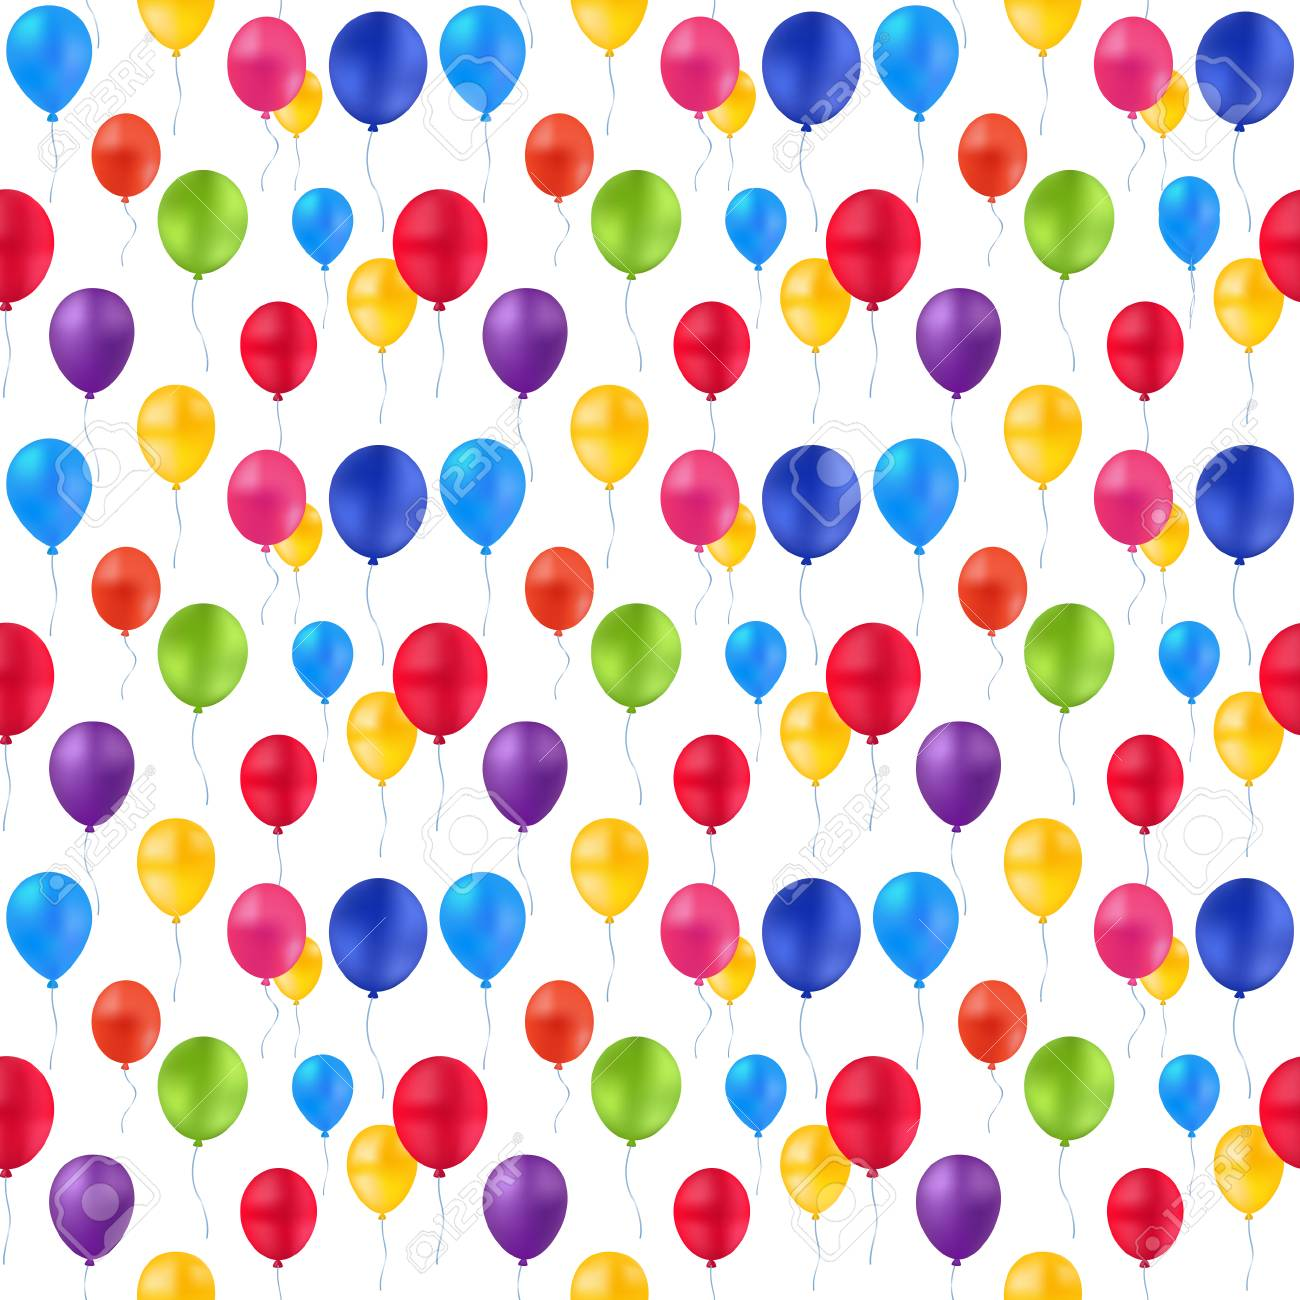 picture regarding Balloons Printable called Print heritage of balloons